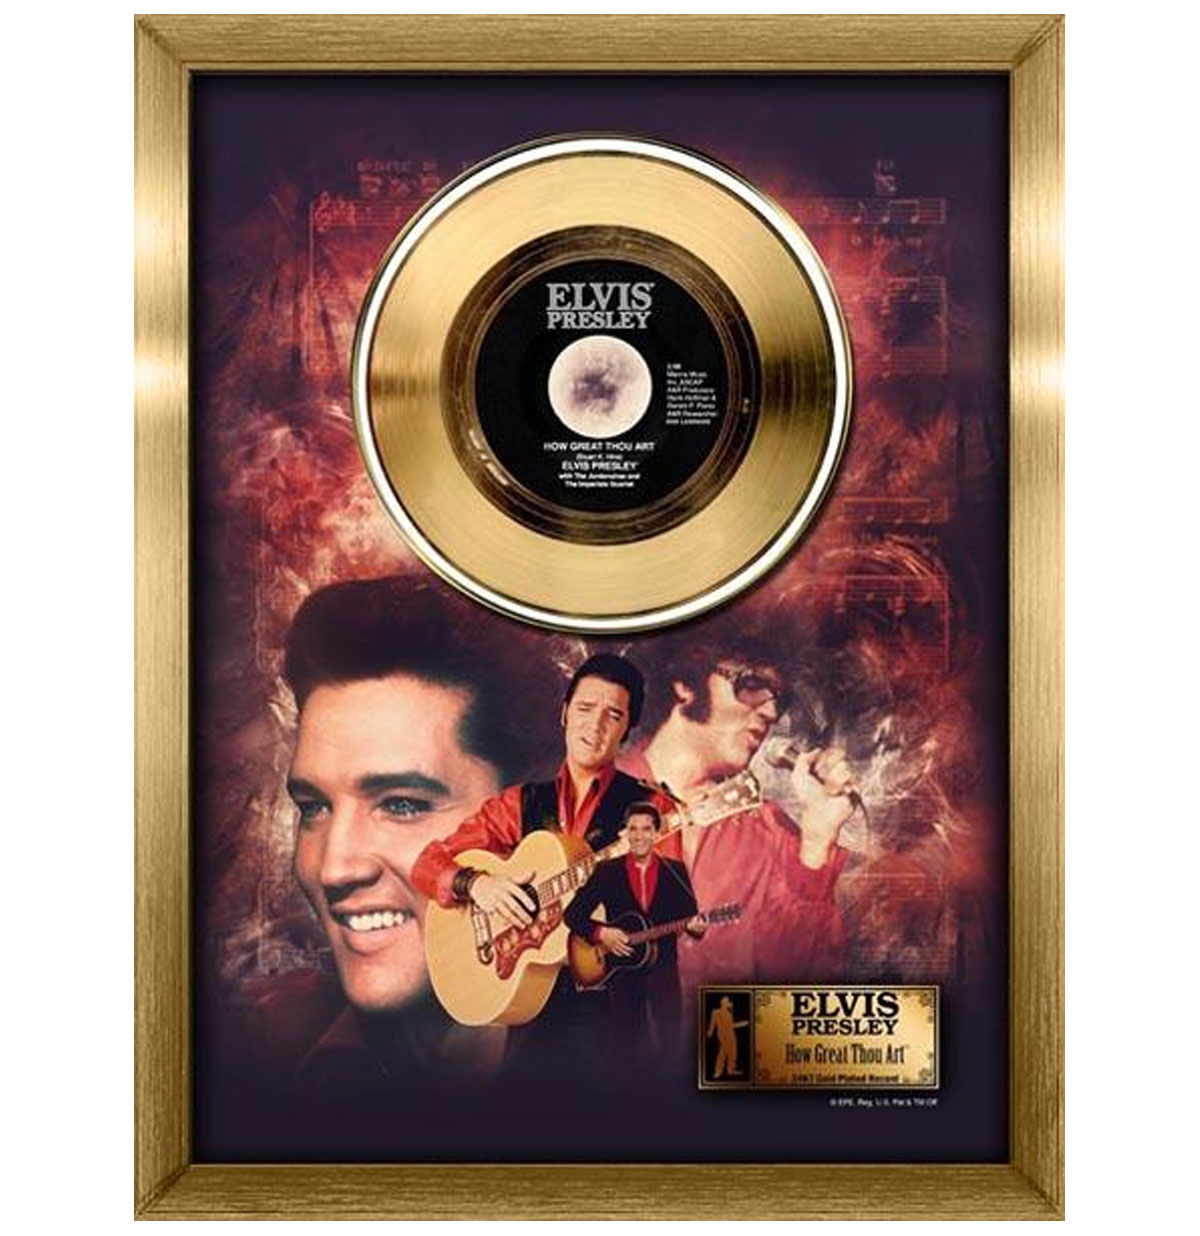 Elvis Presley - How Great Thou Art Gouden Plaat (45RPM)